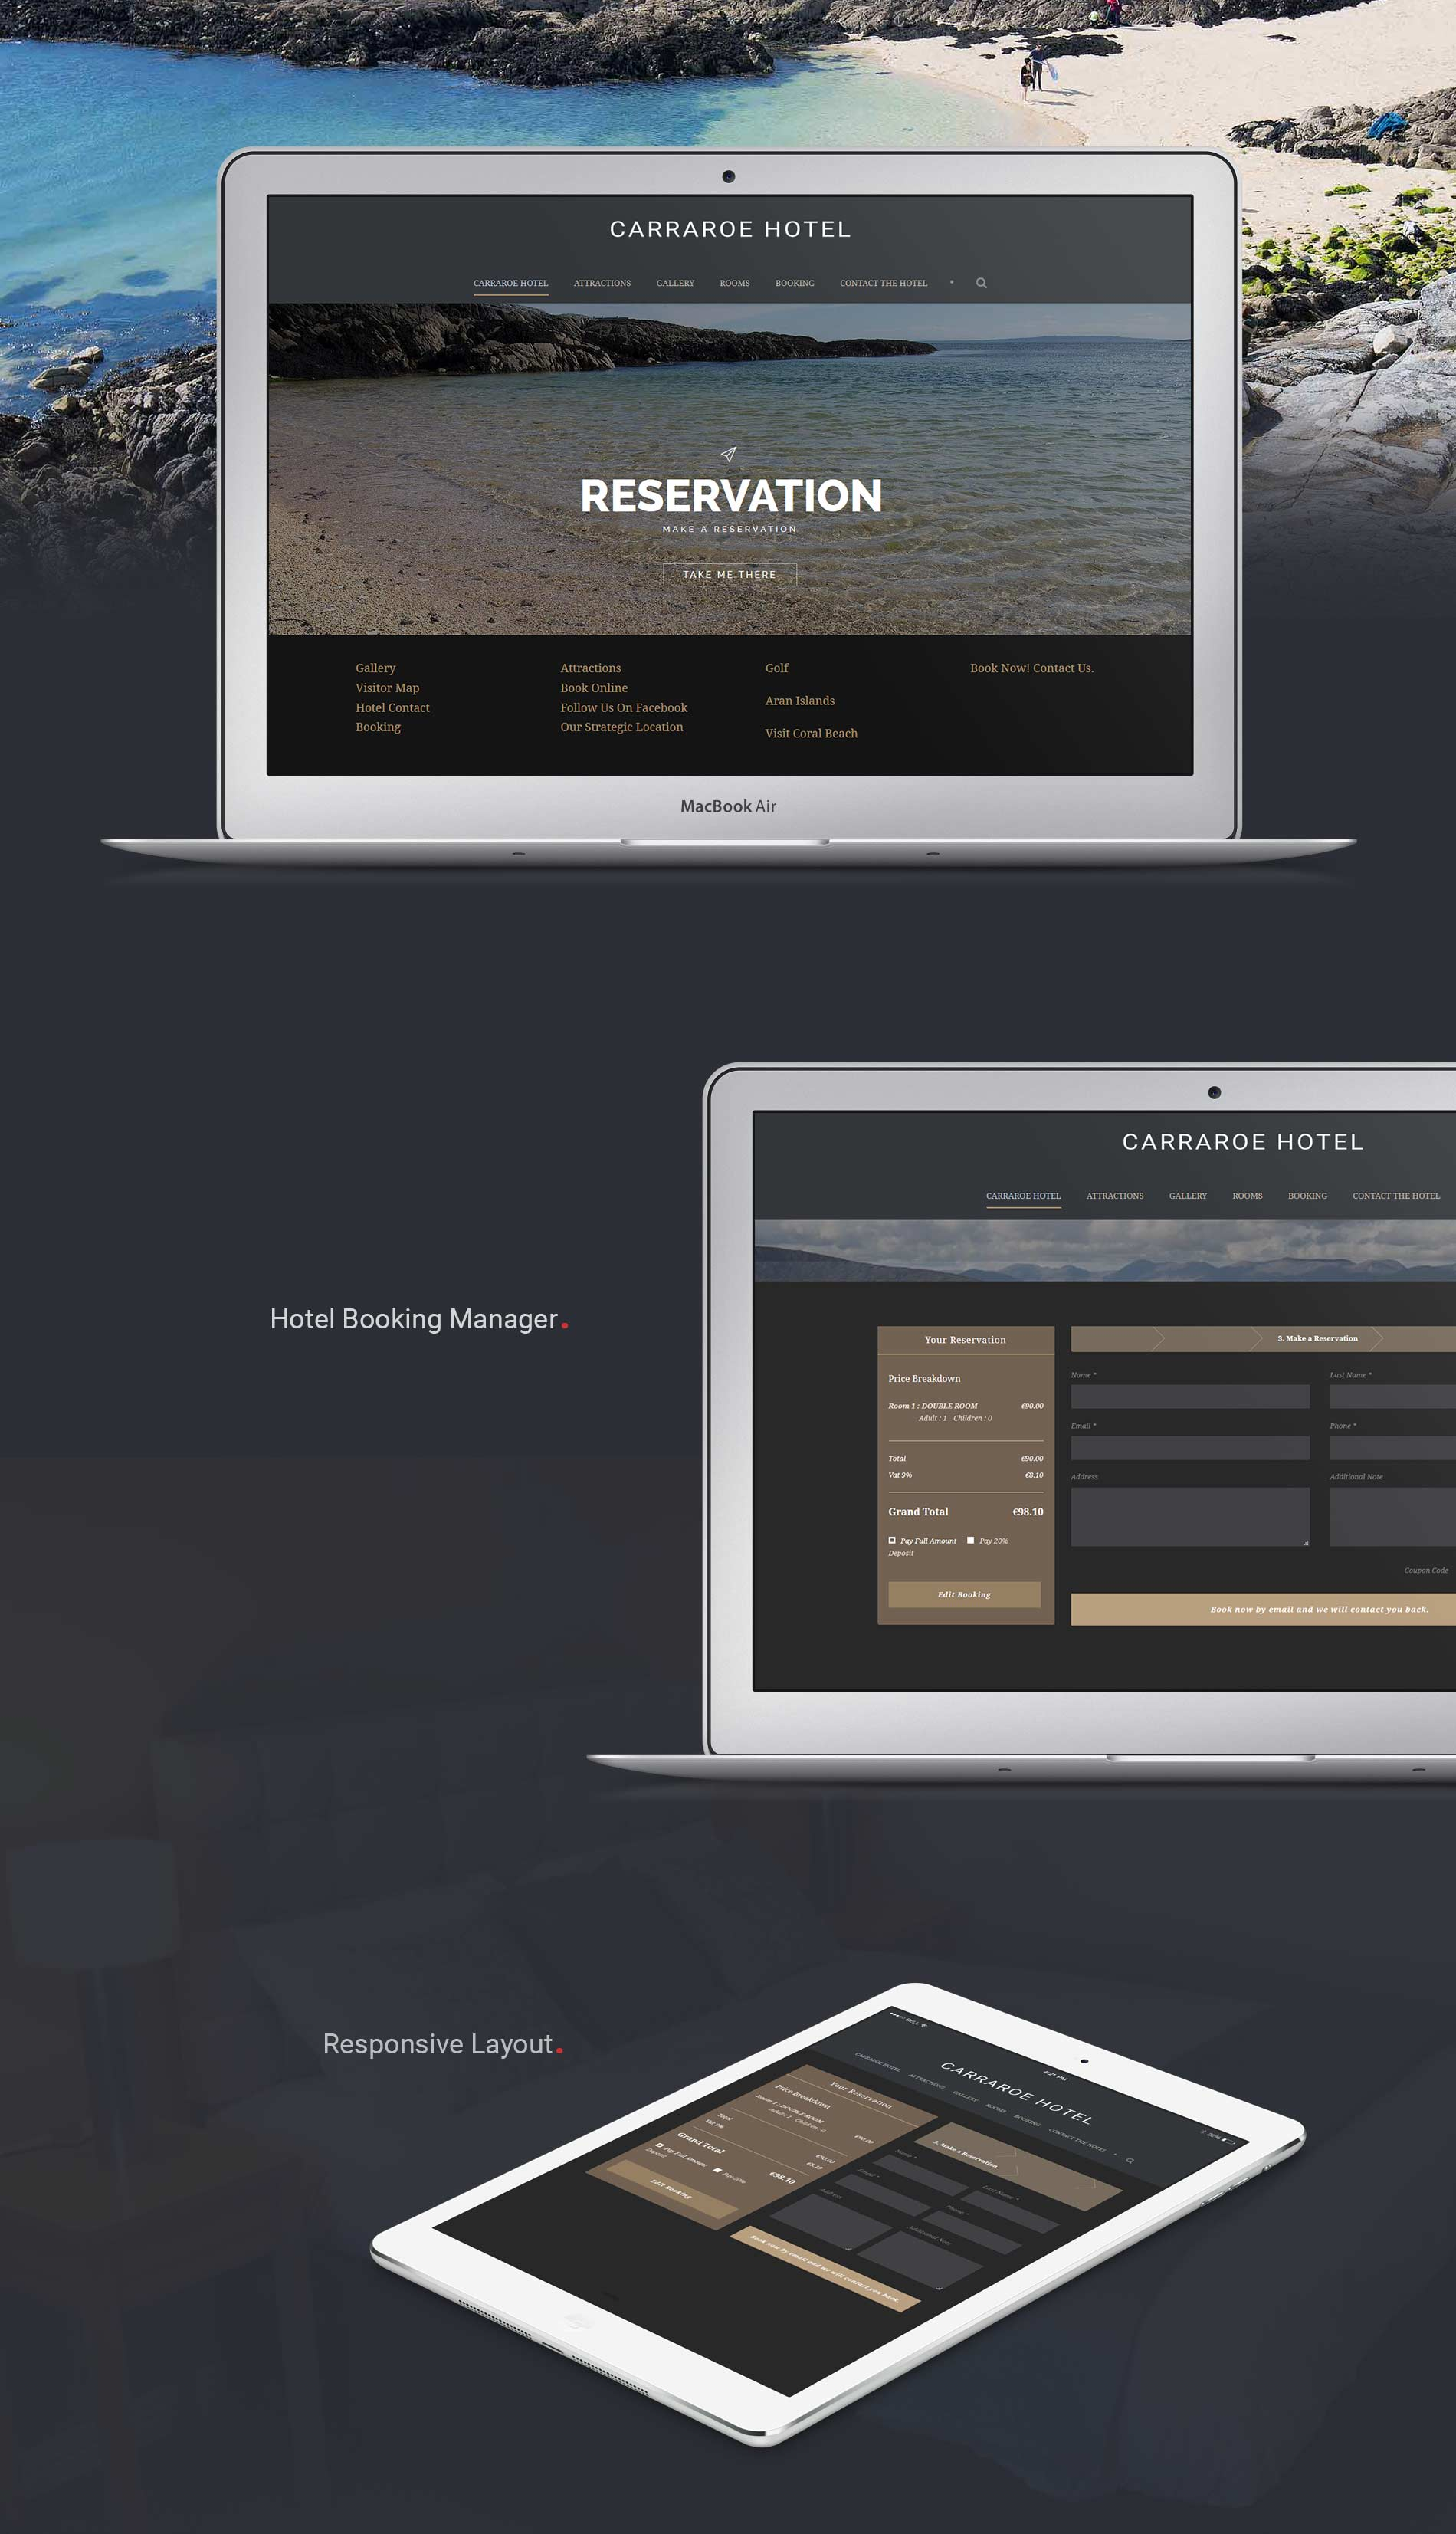 Hotel Website Design Presentation